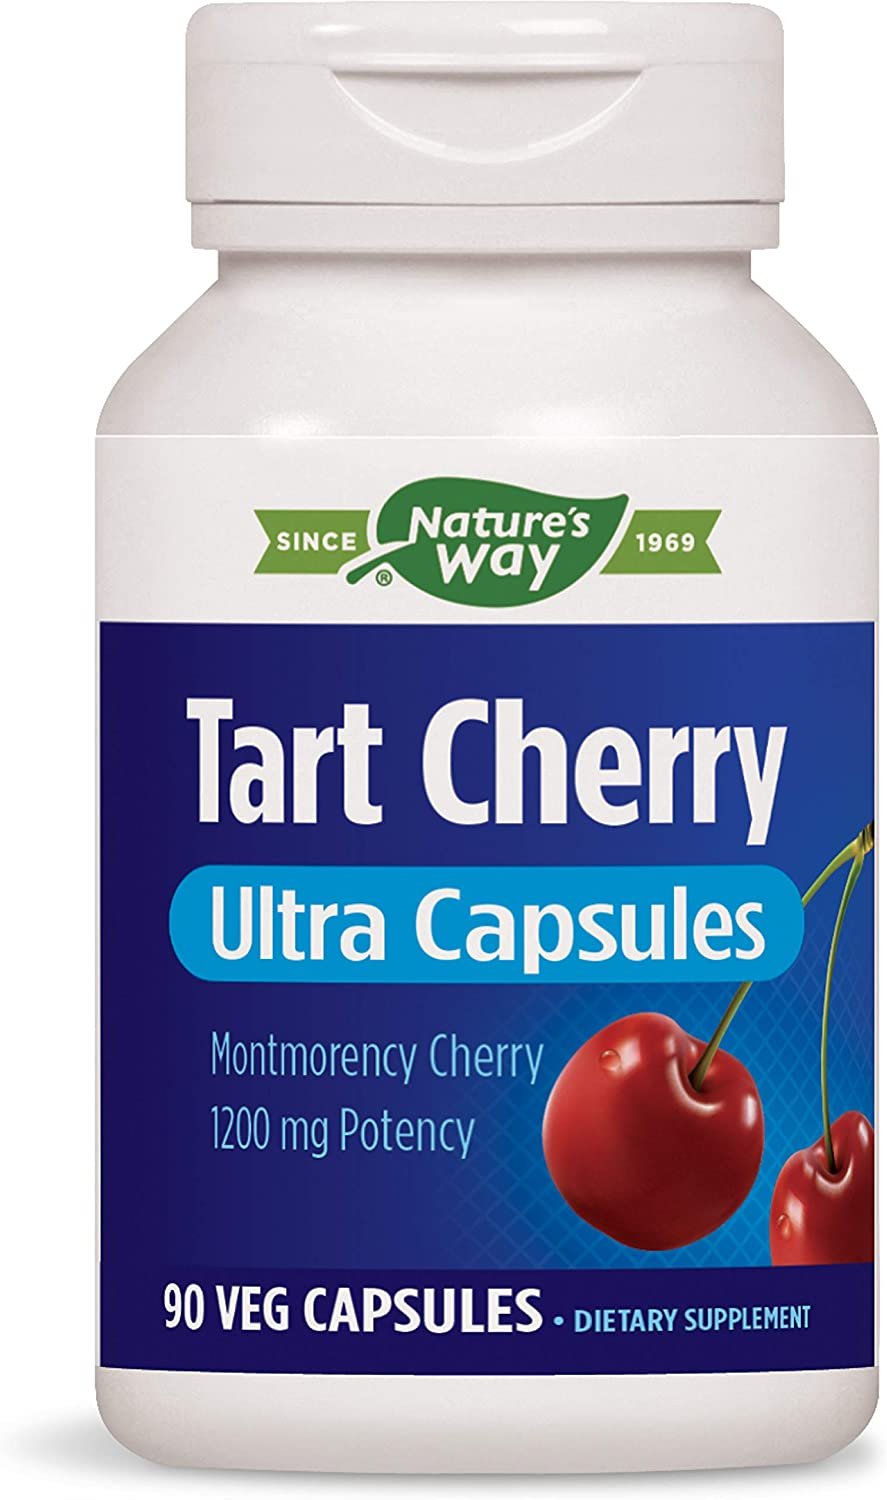 Tart Cherry Ultra 90 CT - Medical Grade Nutrients